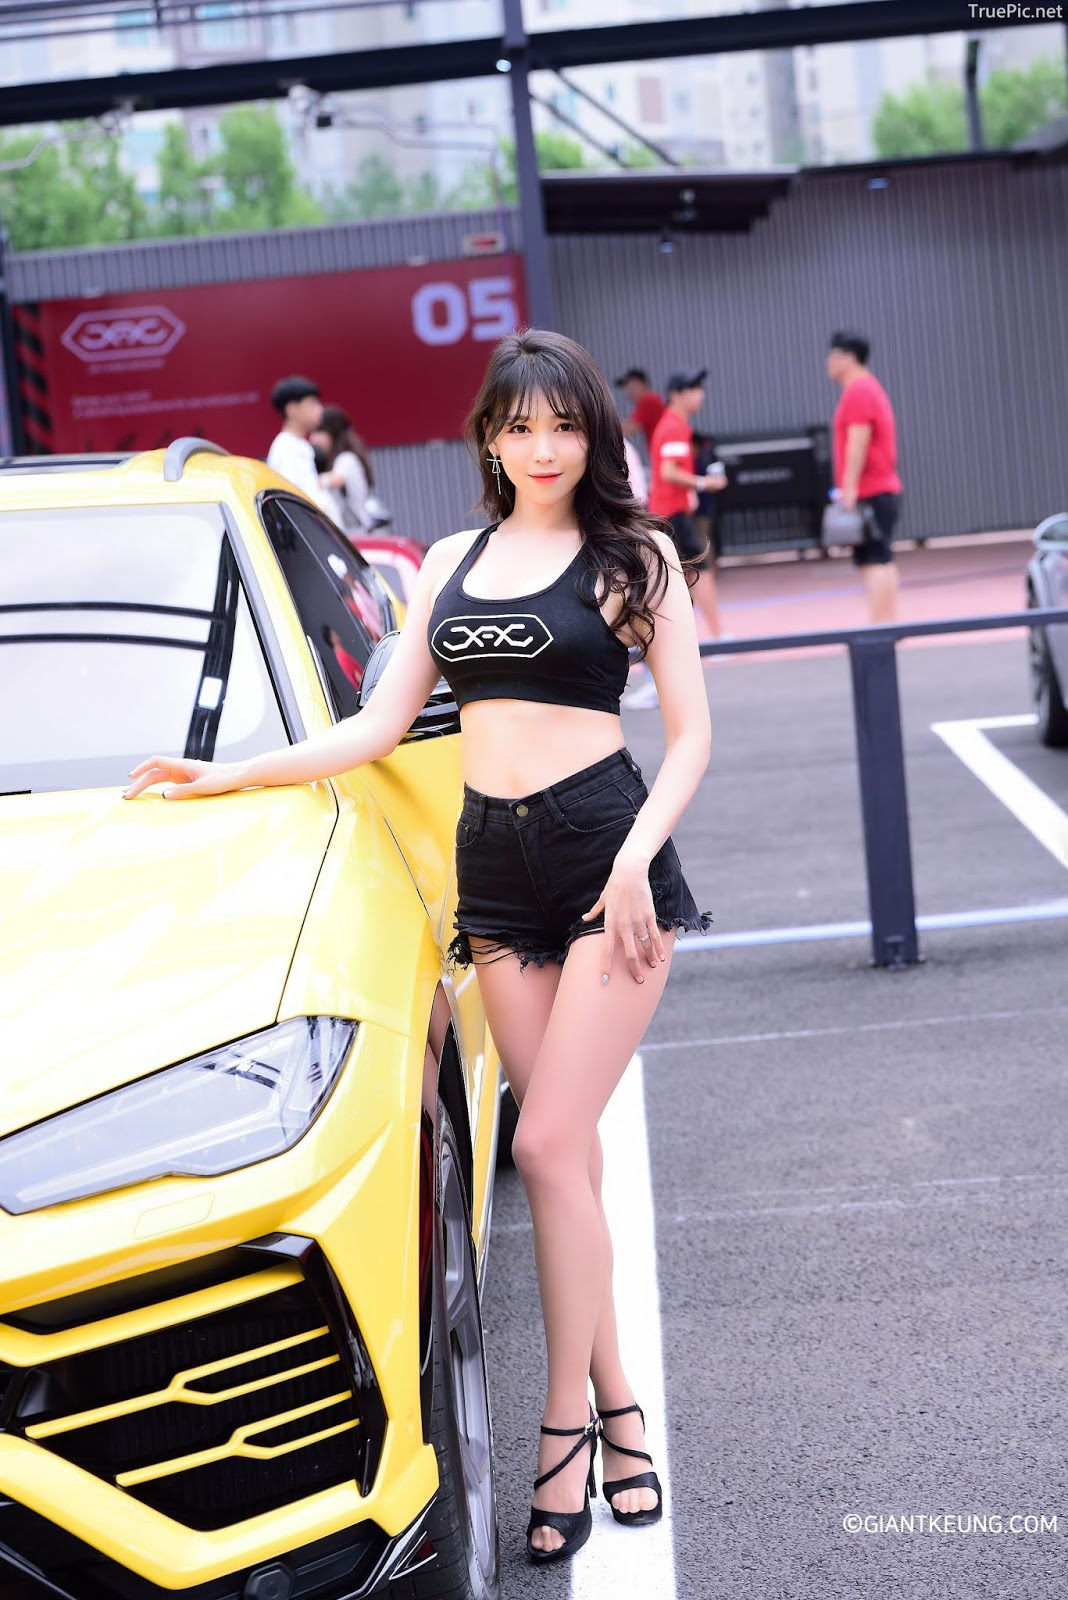 Korean Racing Model - Lee Eun Hye (이은혜) - JAJ Charity Motor Show 2019 - Picture 2